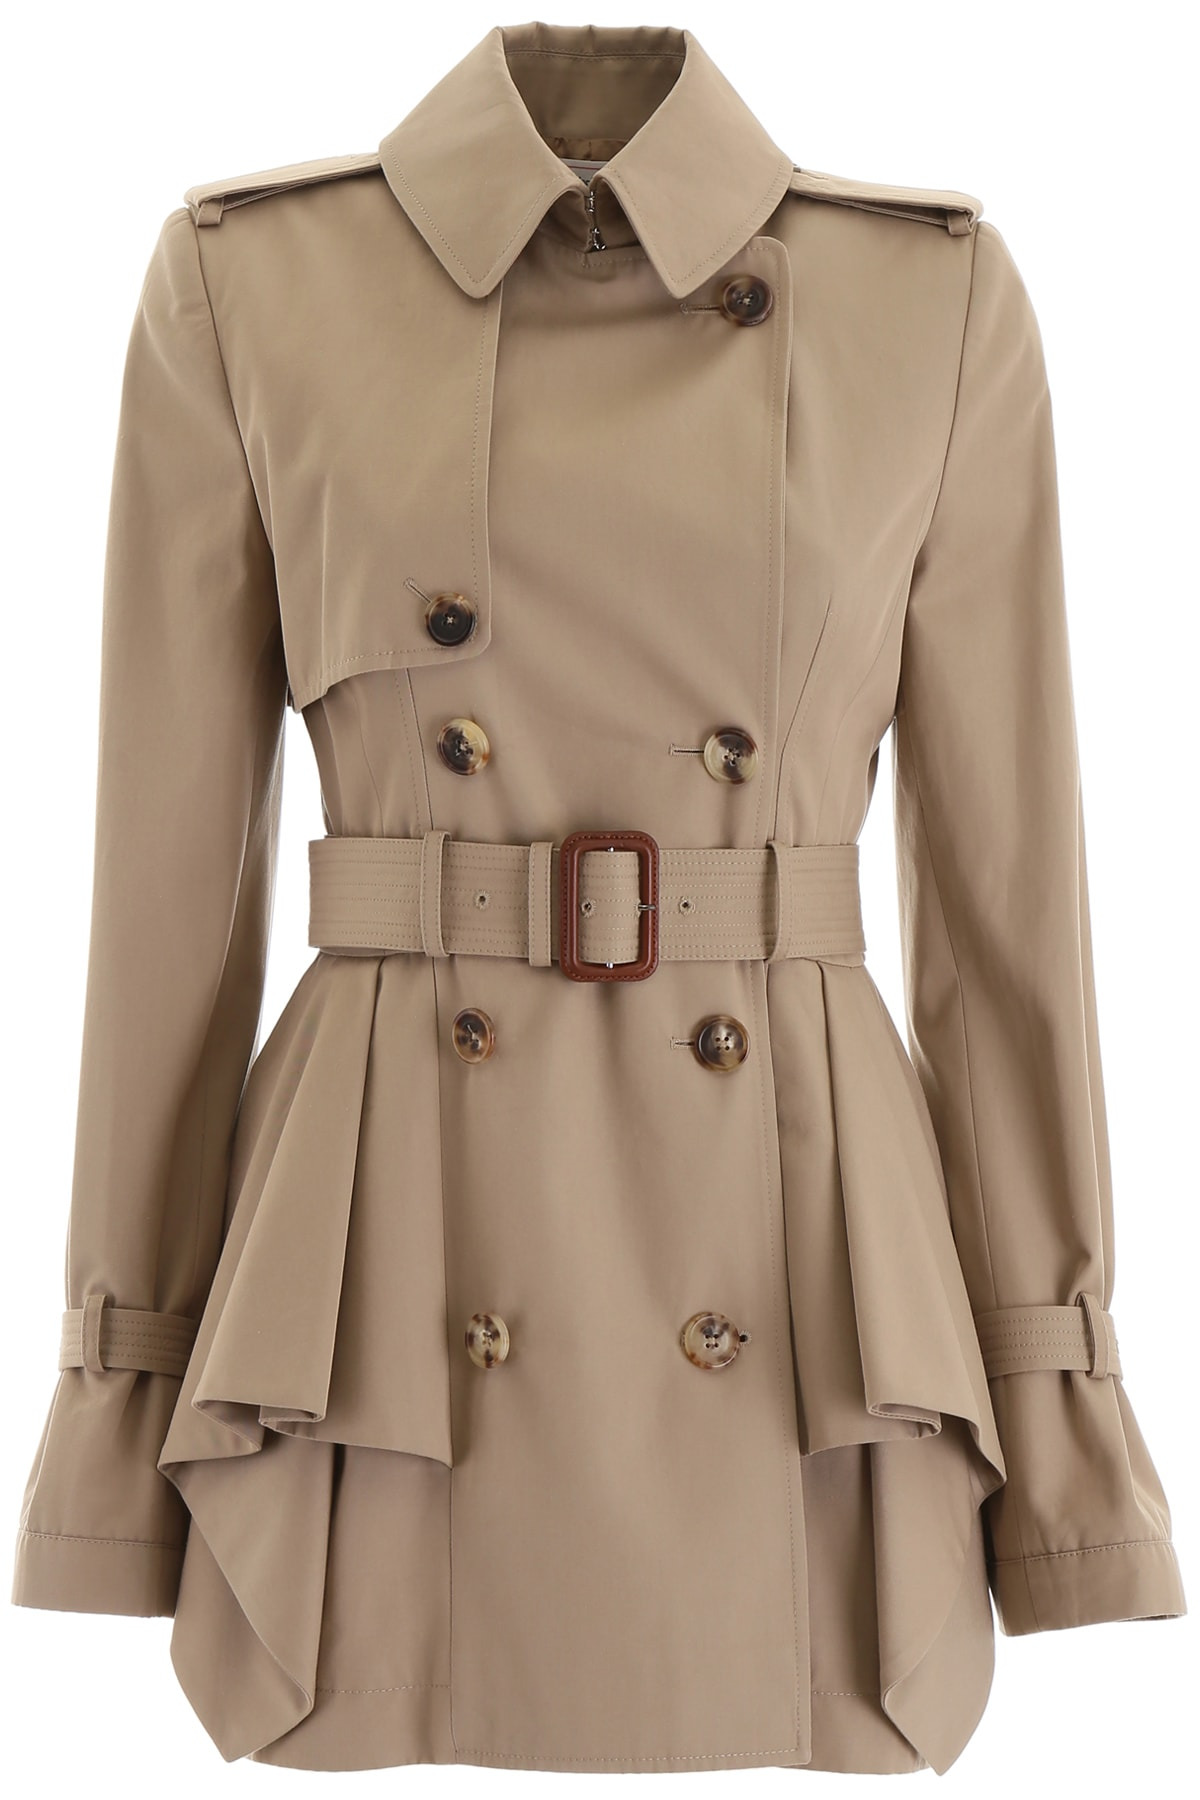 unequal in performance factory outlets attractivefashion Alexander McQueen Peplum Trench Coat